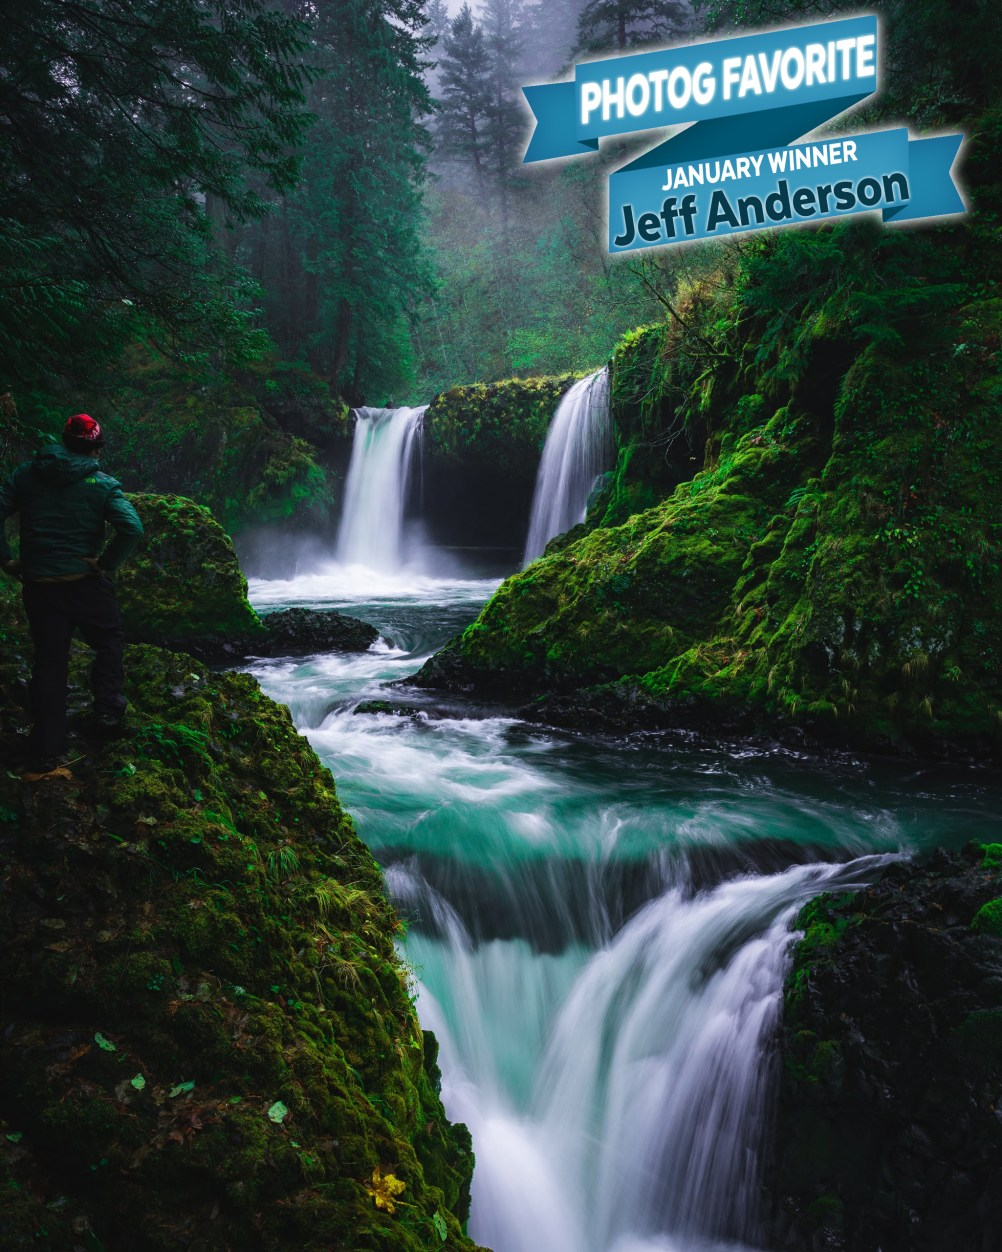 January 2019 Photog Favorite Contest Winner - Jeffrey Anderson